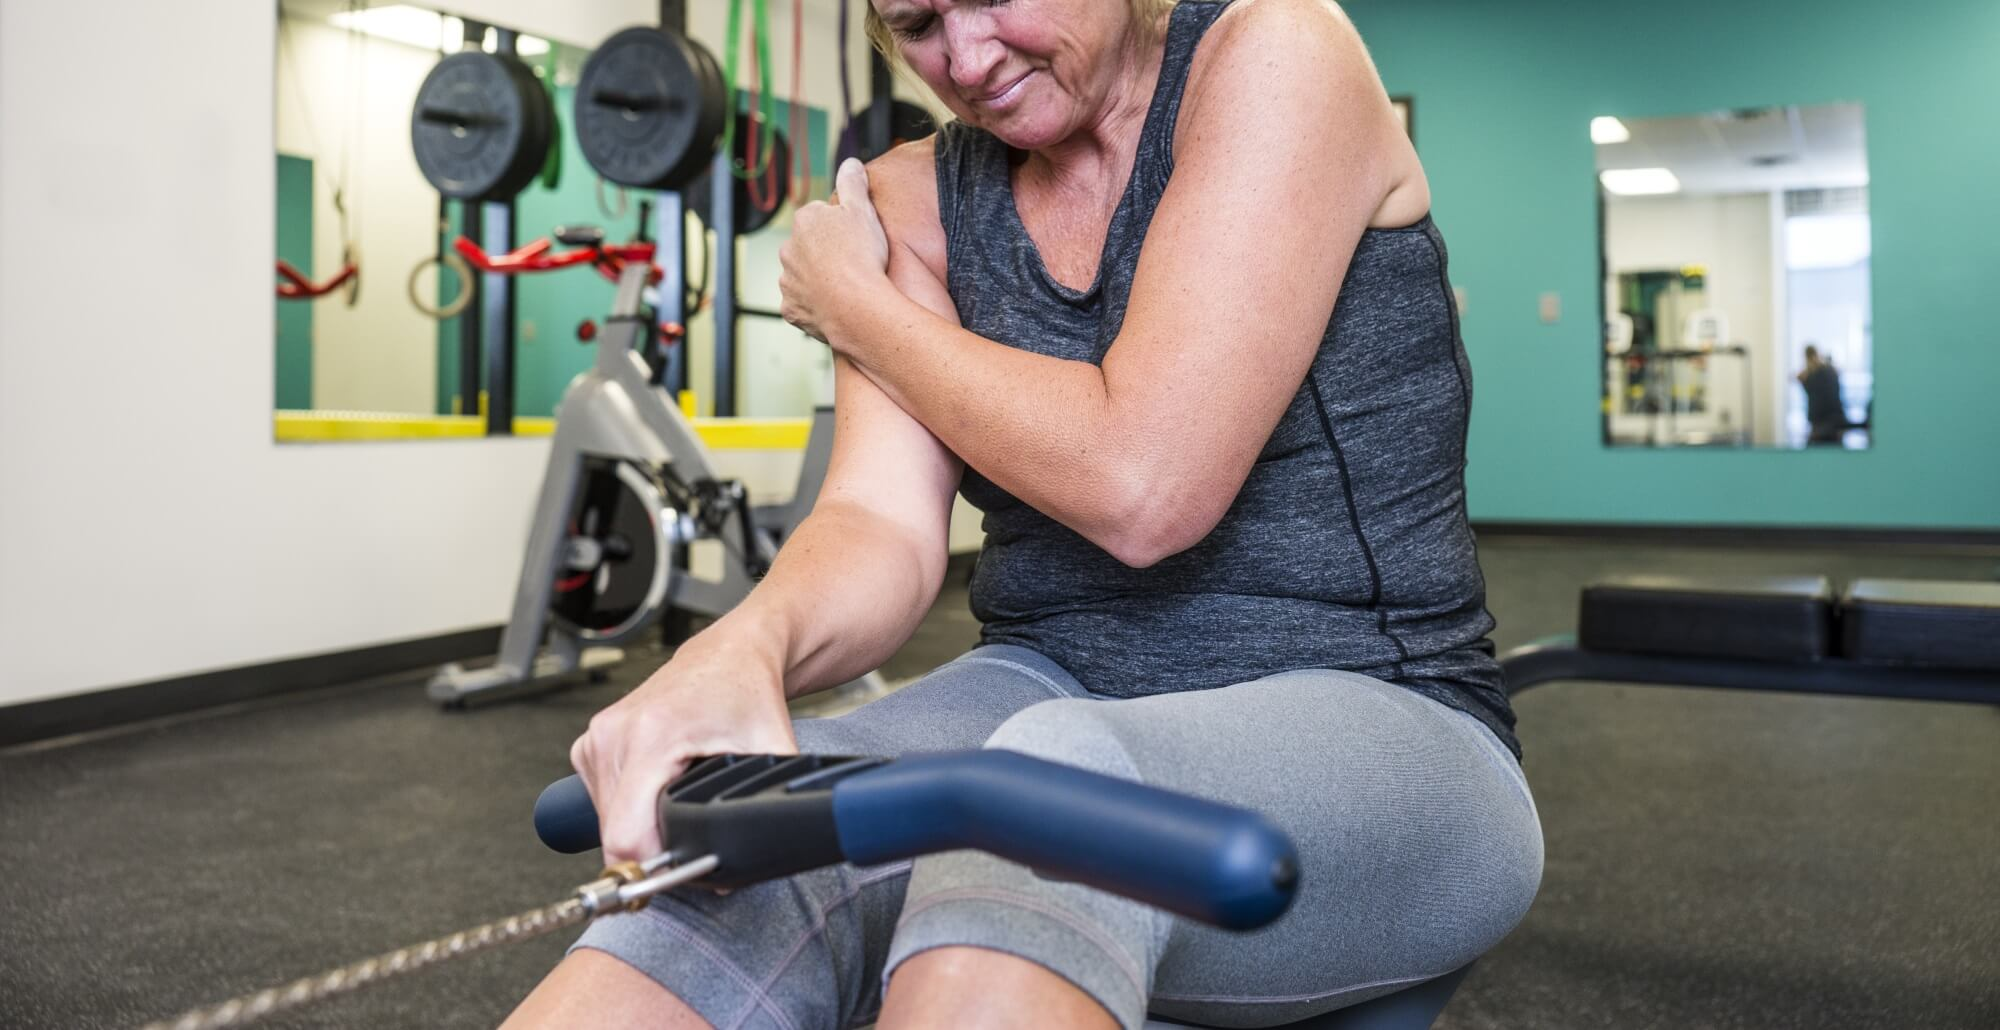 Exercising woman holding shoulder in pain